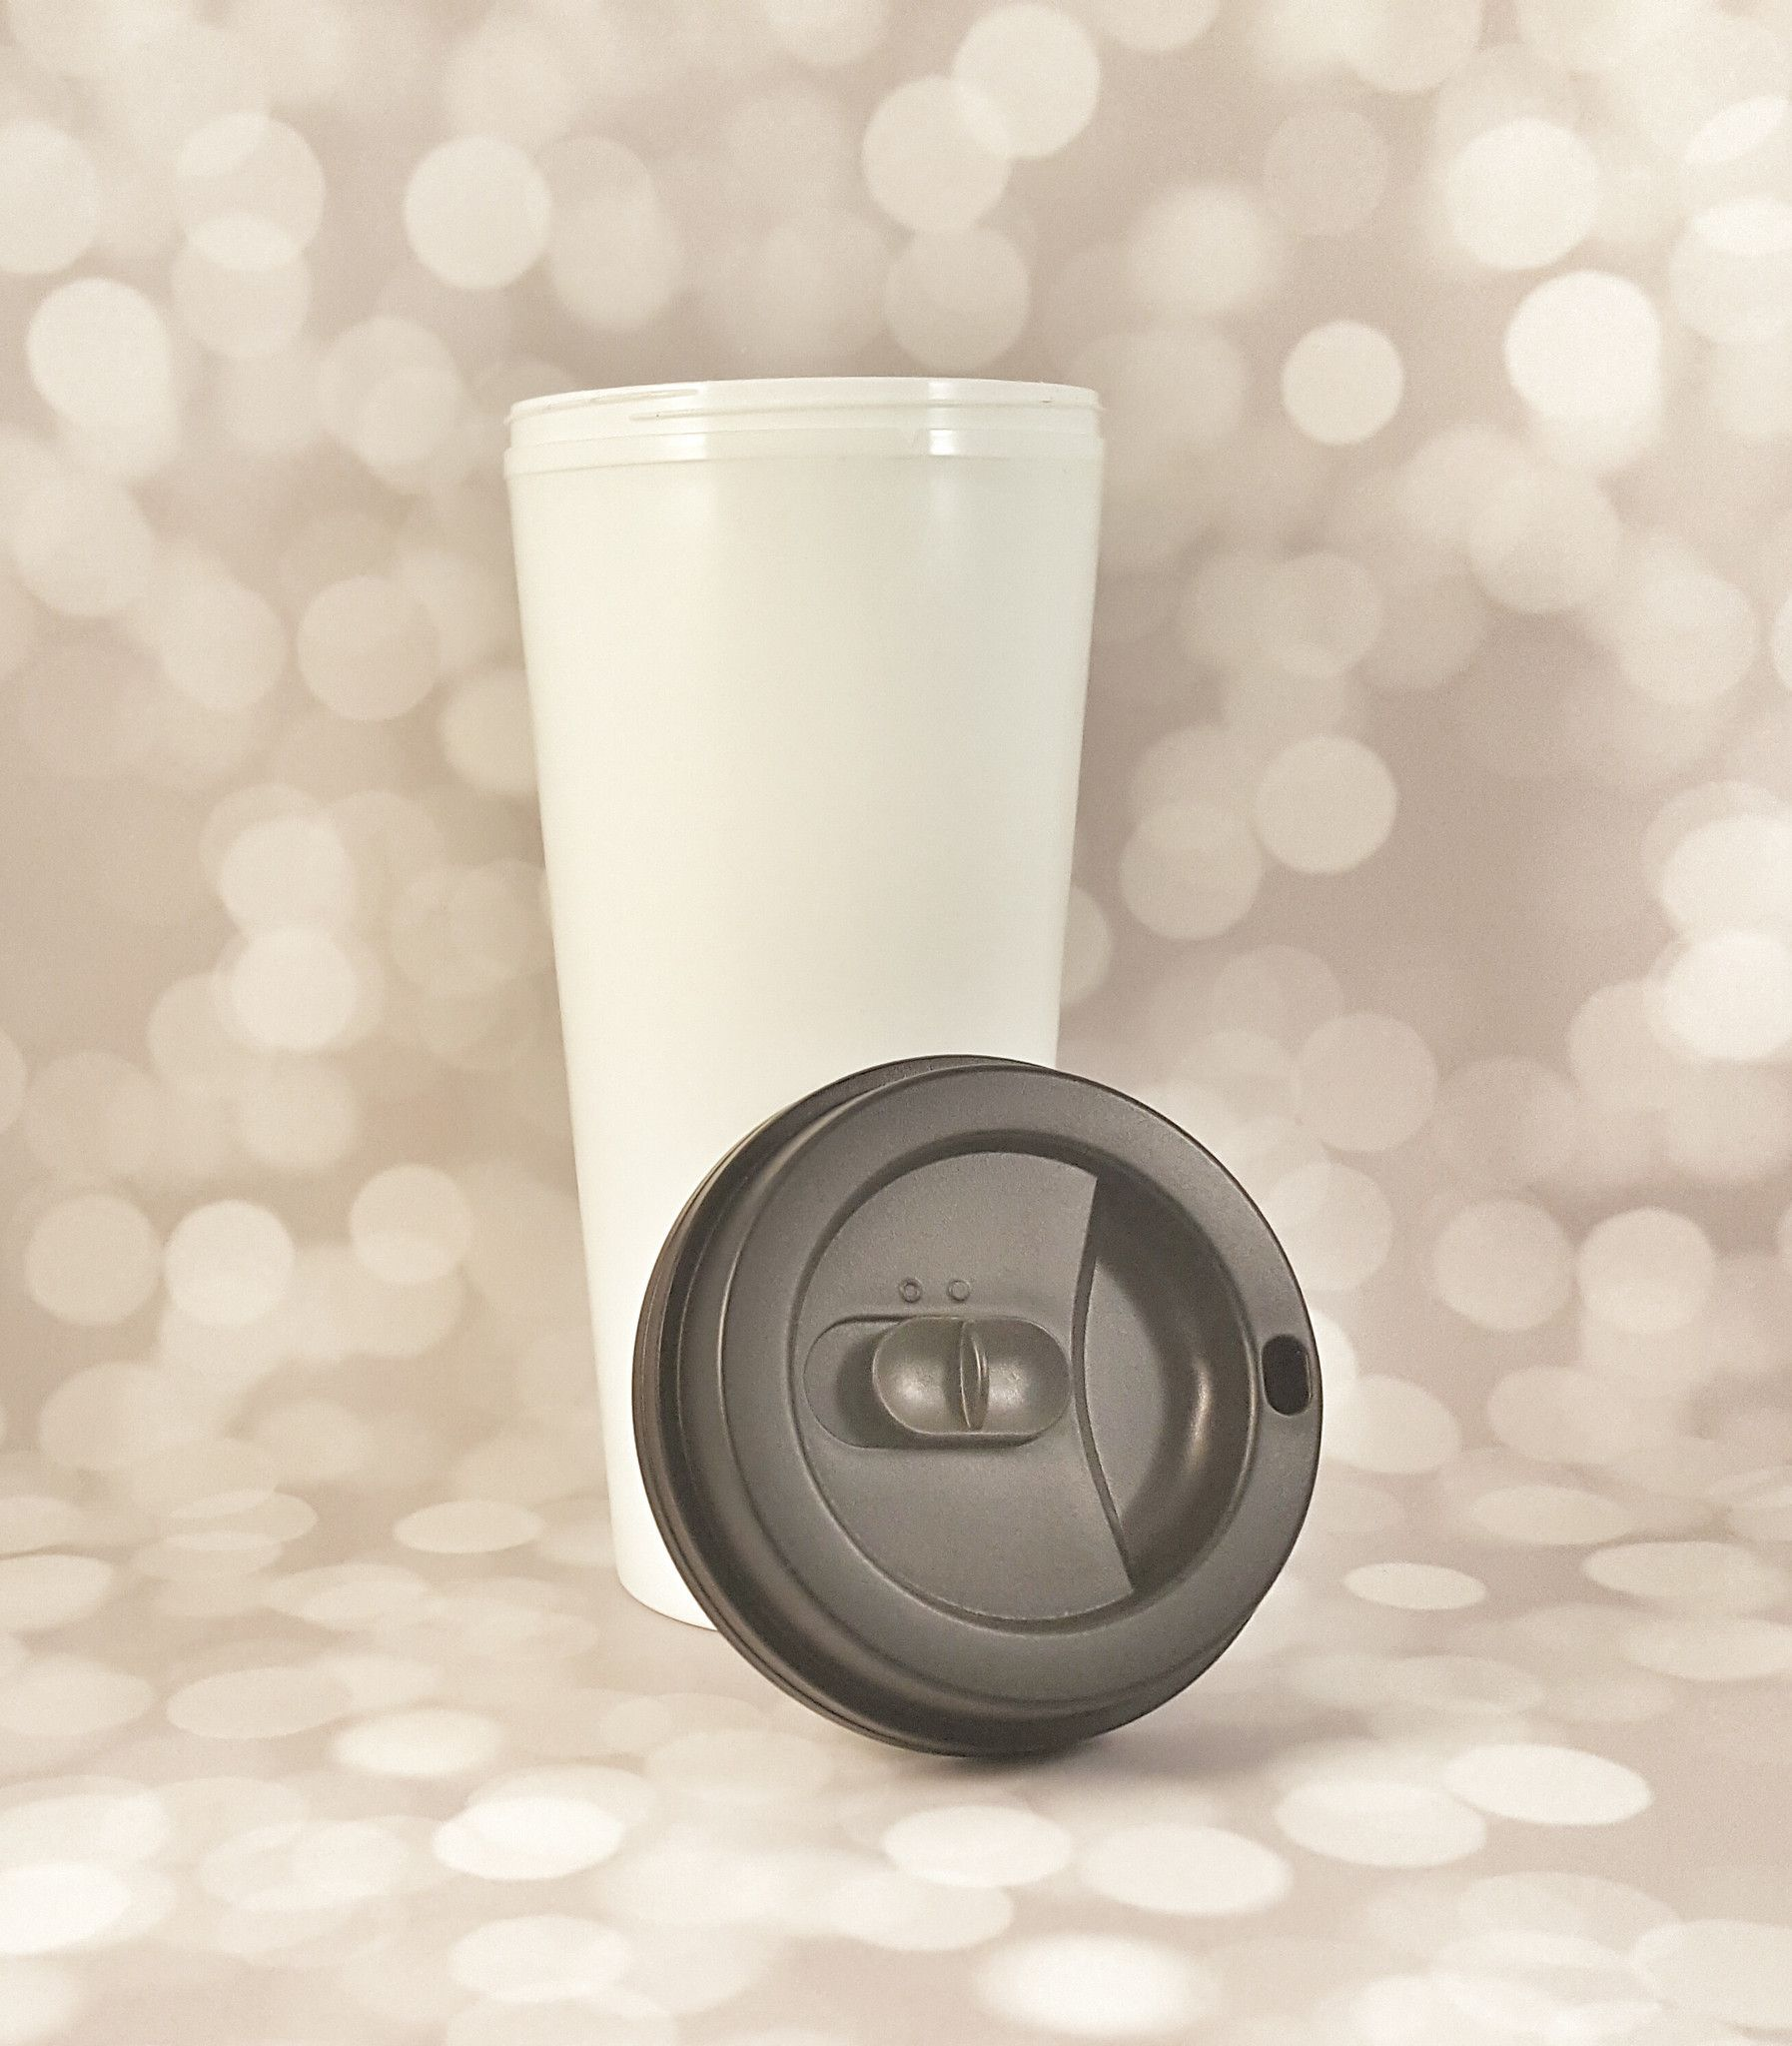 Wake Up and be Younique Glitter Travel Mug While your'e enjoying your favorite venti size beverage in this lovely travel mug, set those goals and achieve them! Let me tell you why I love these travel